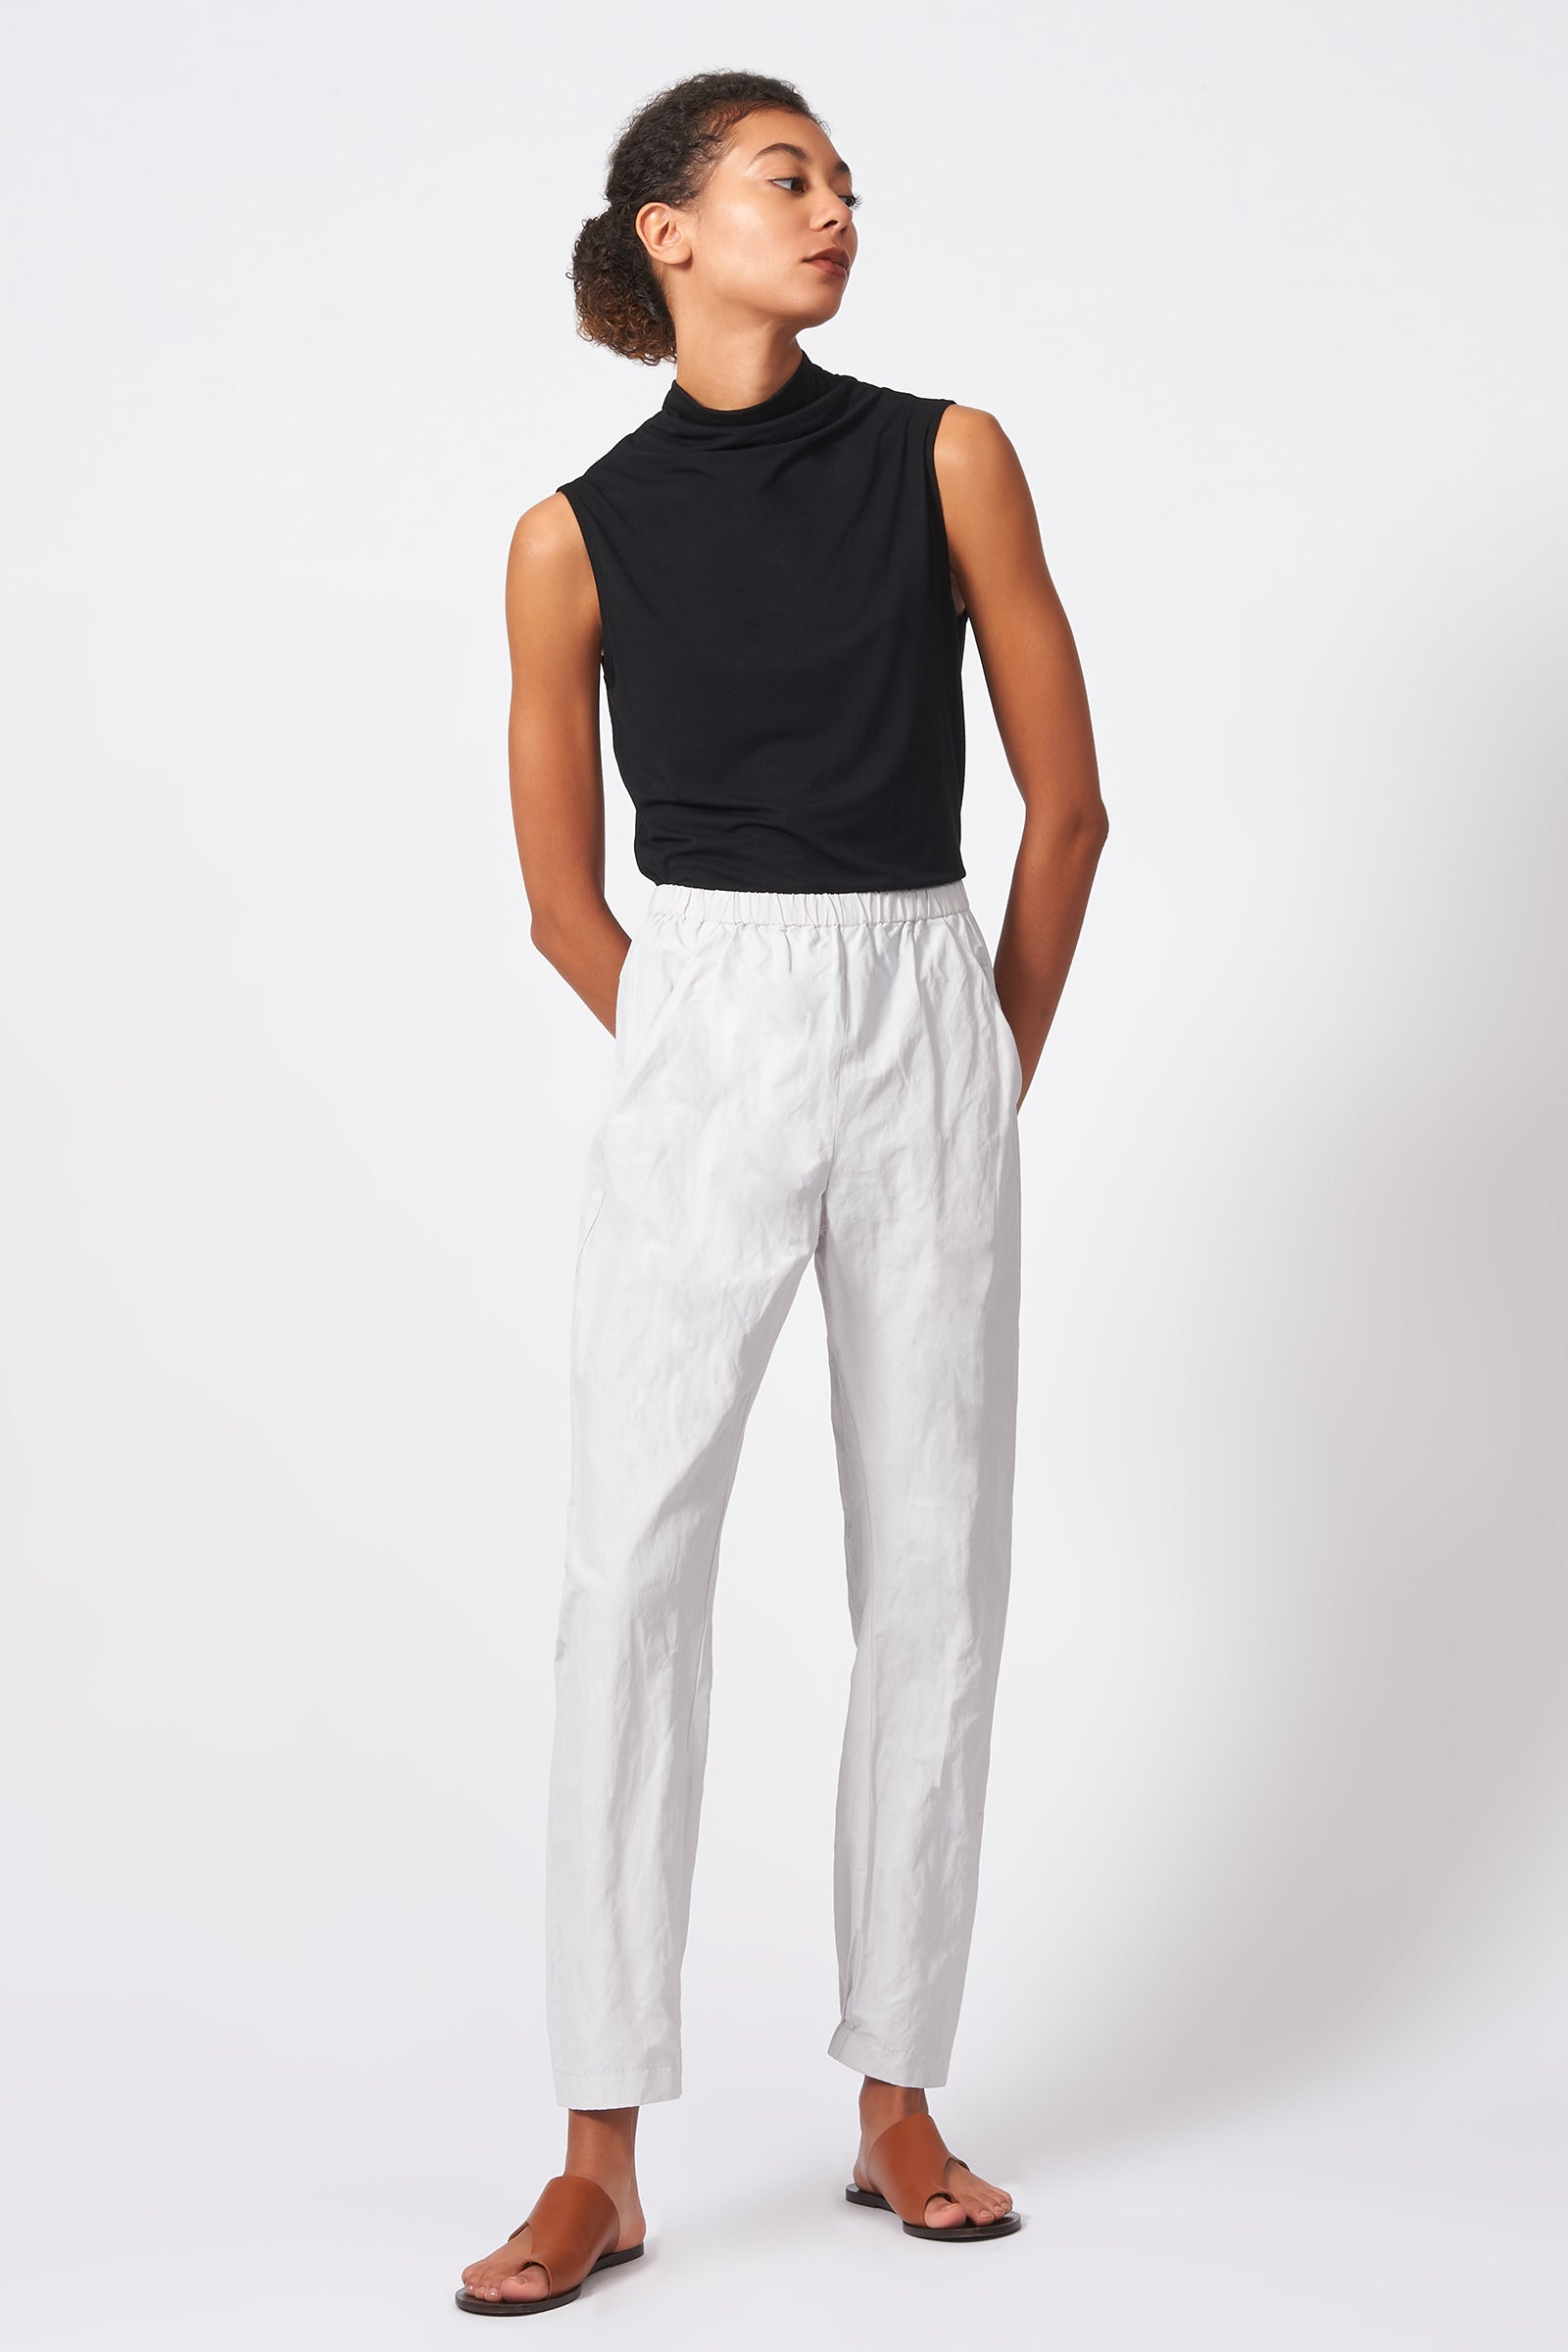 Kal Rieman Angle Seam Jogger in Stone Cotton Nylon on Model Front Full View